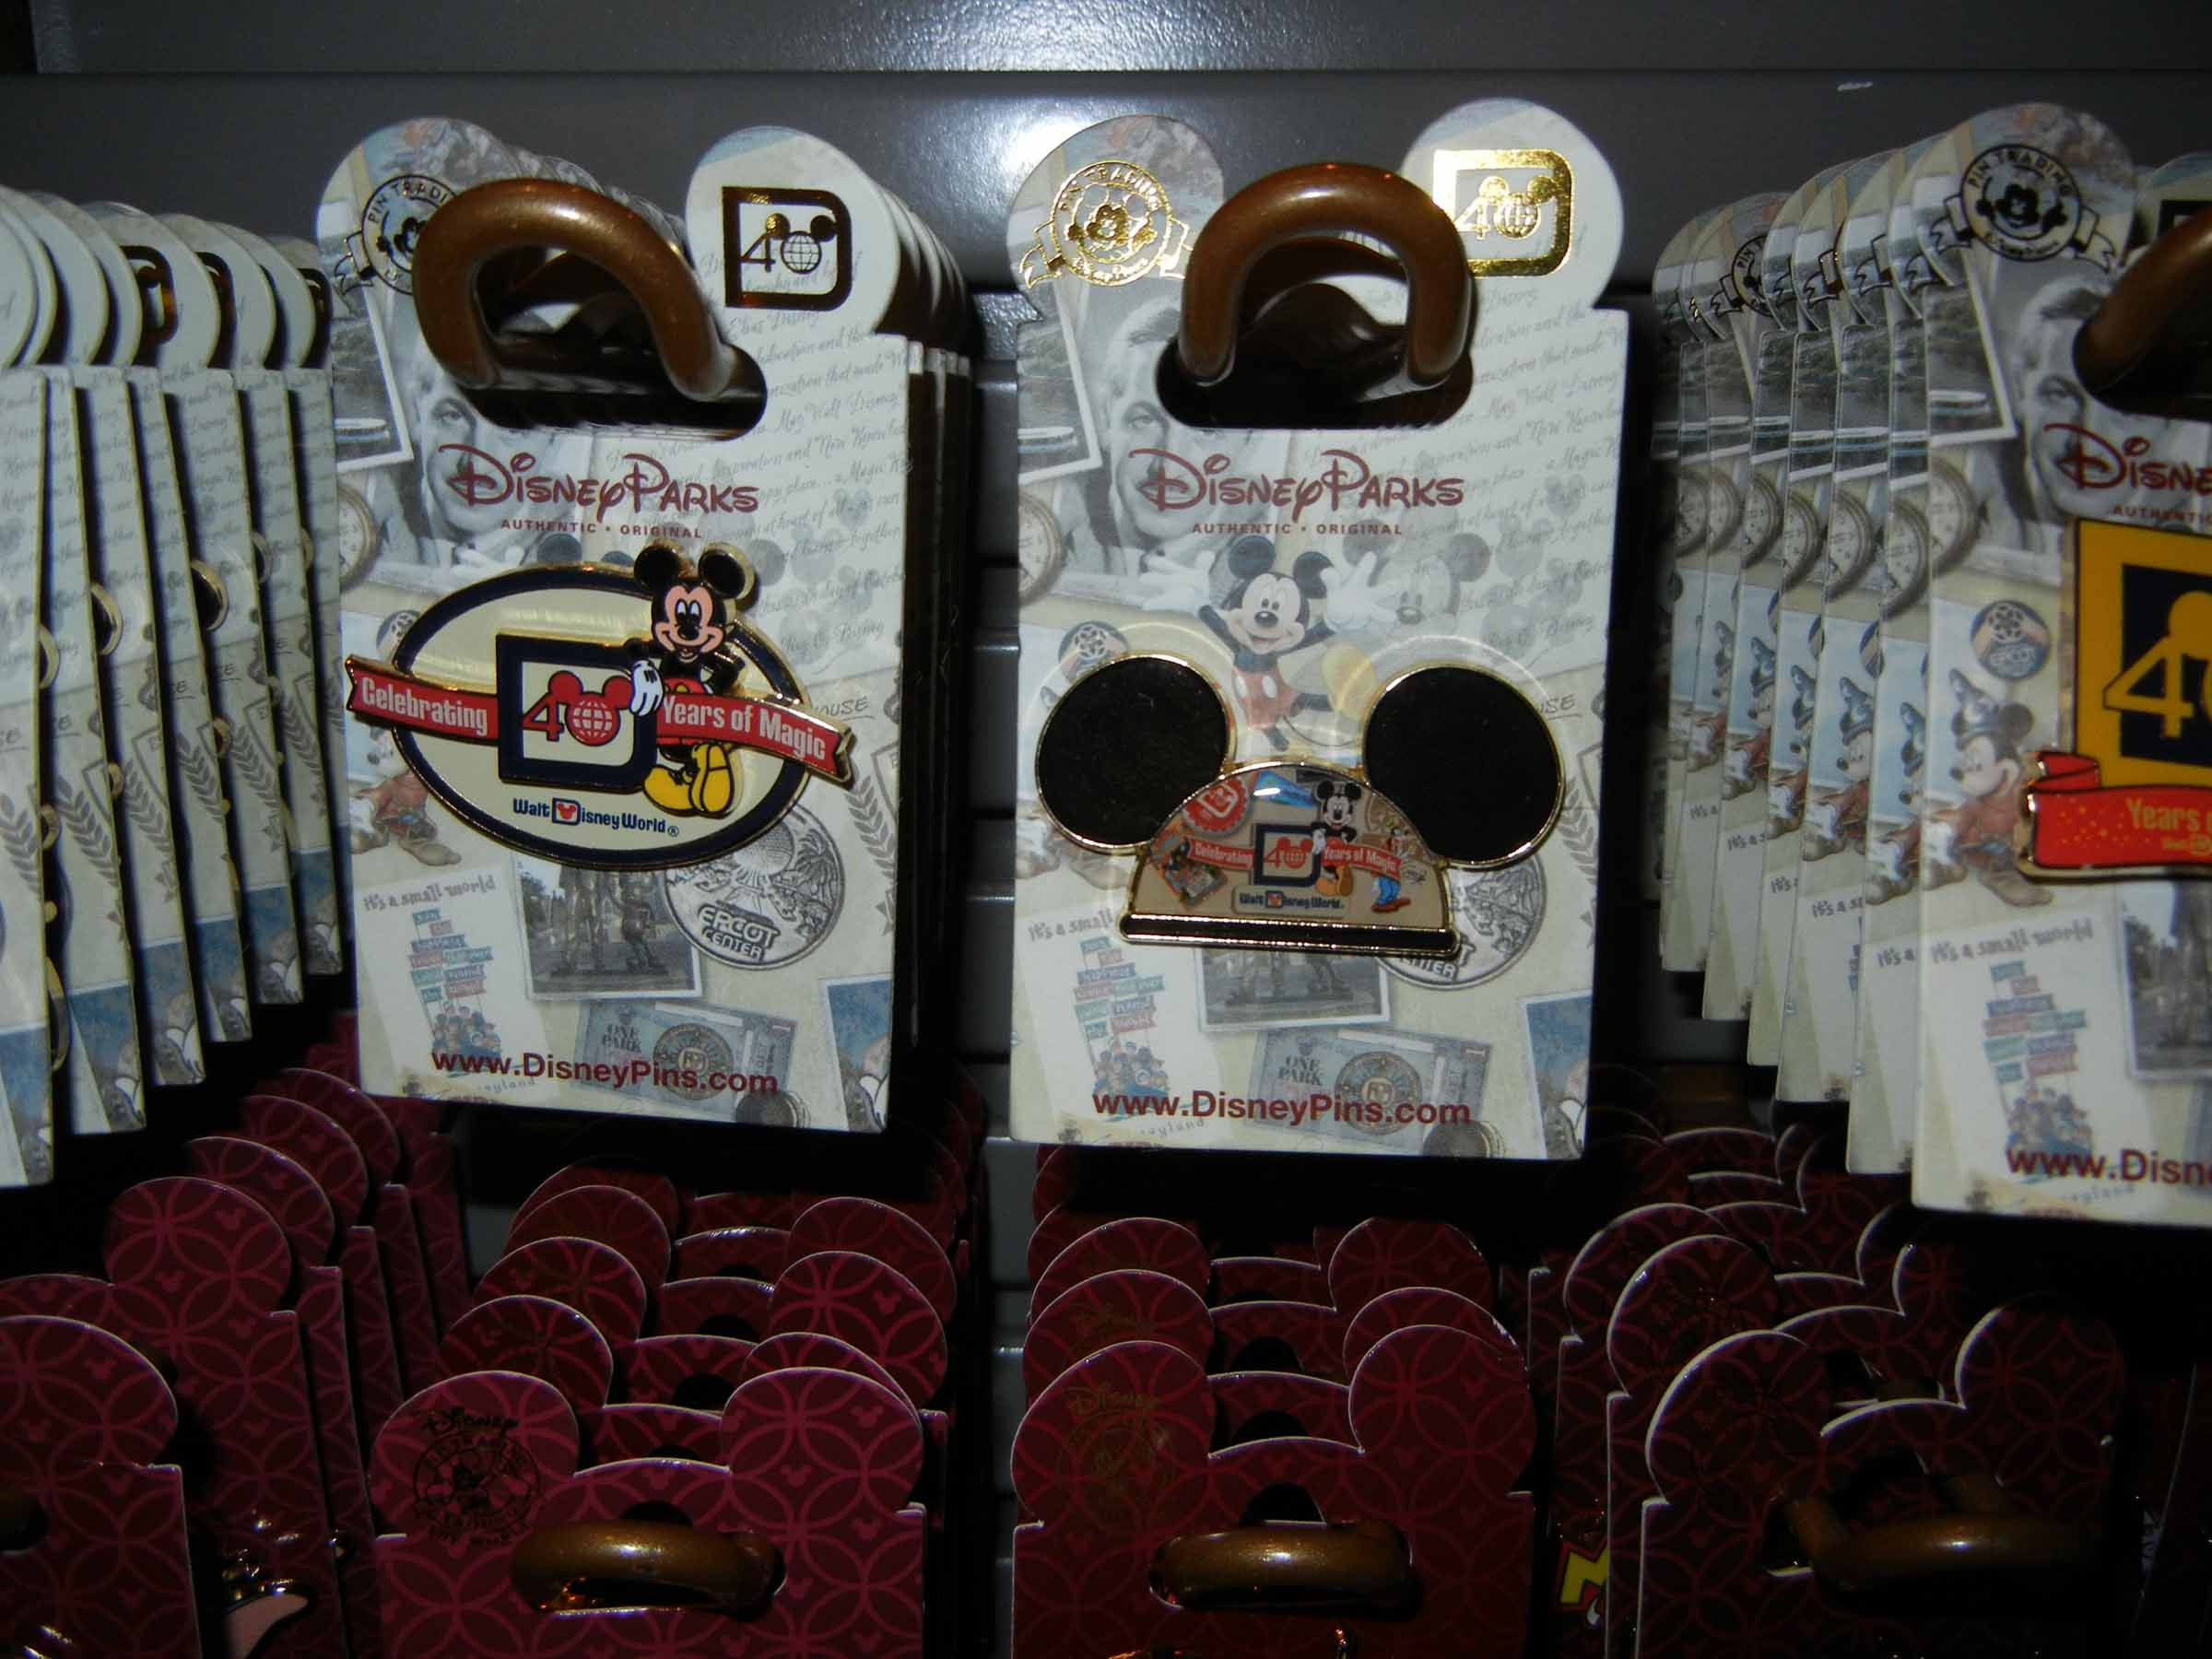 Walt Disney World 40th Anniversary Pins